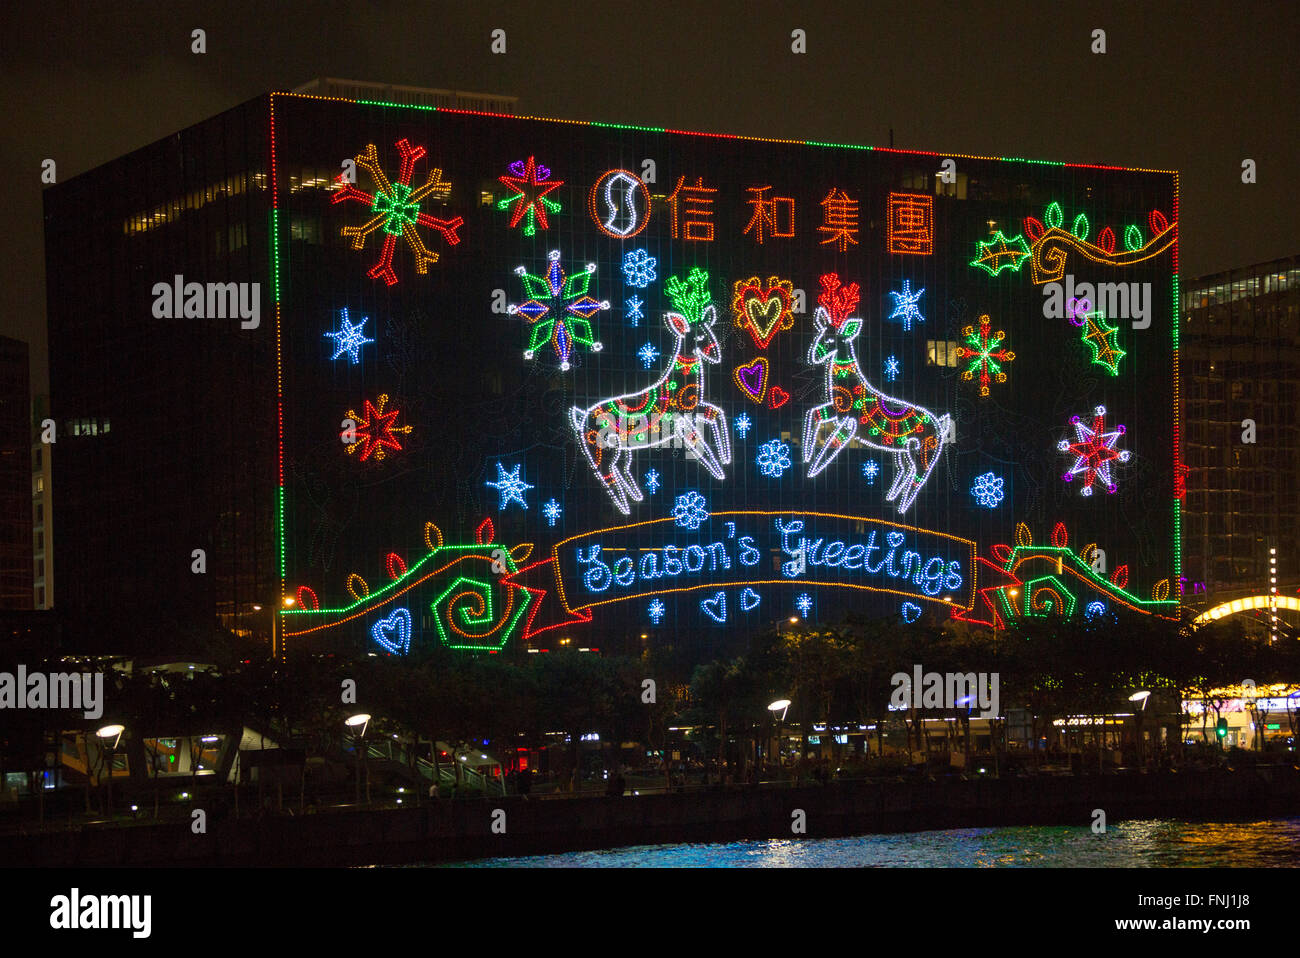 seasons greetings giant festive christmas lights display at night on buildings victoria harbour hong kong island